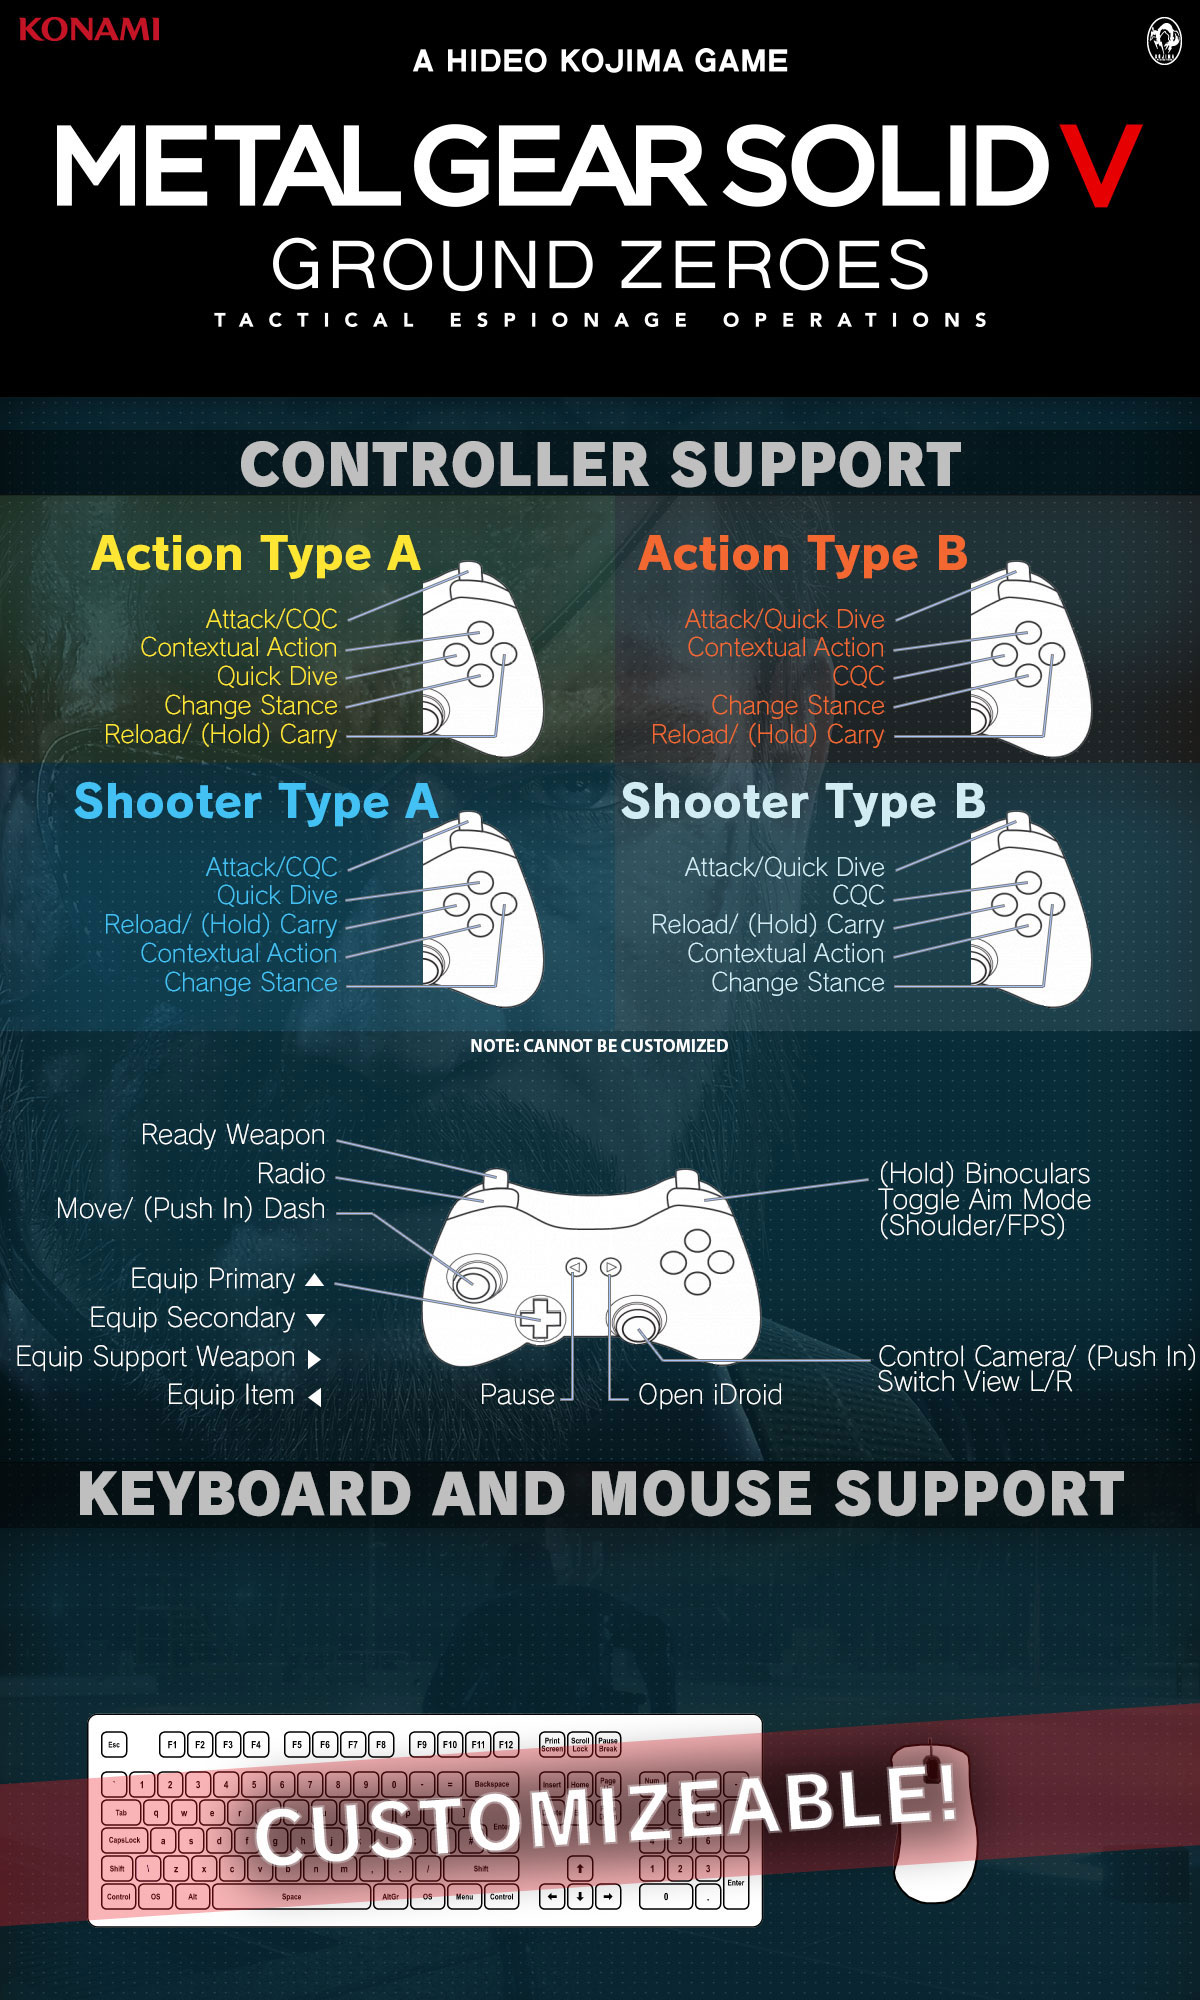 MGSV-Ground-Zeroes-PC-Controls